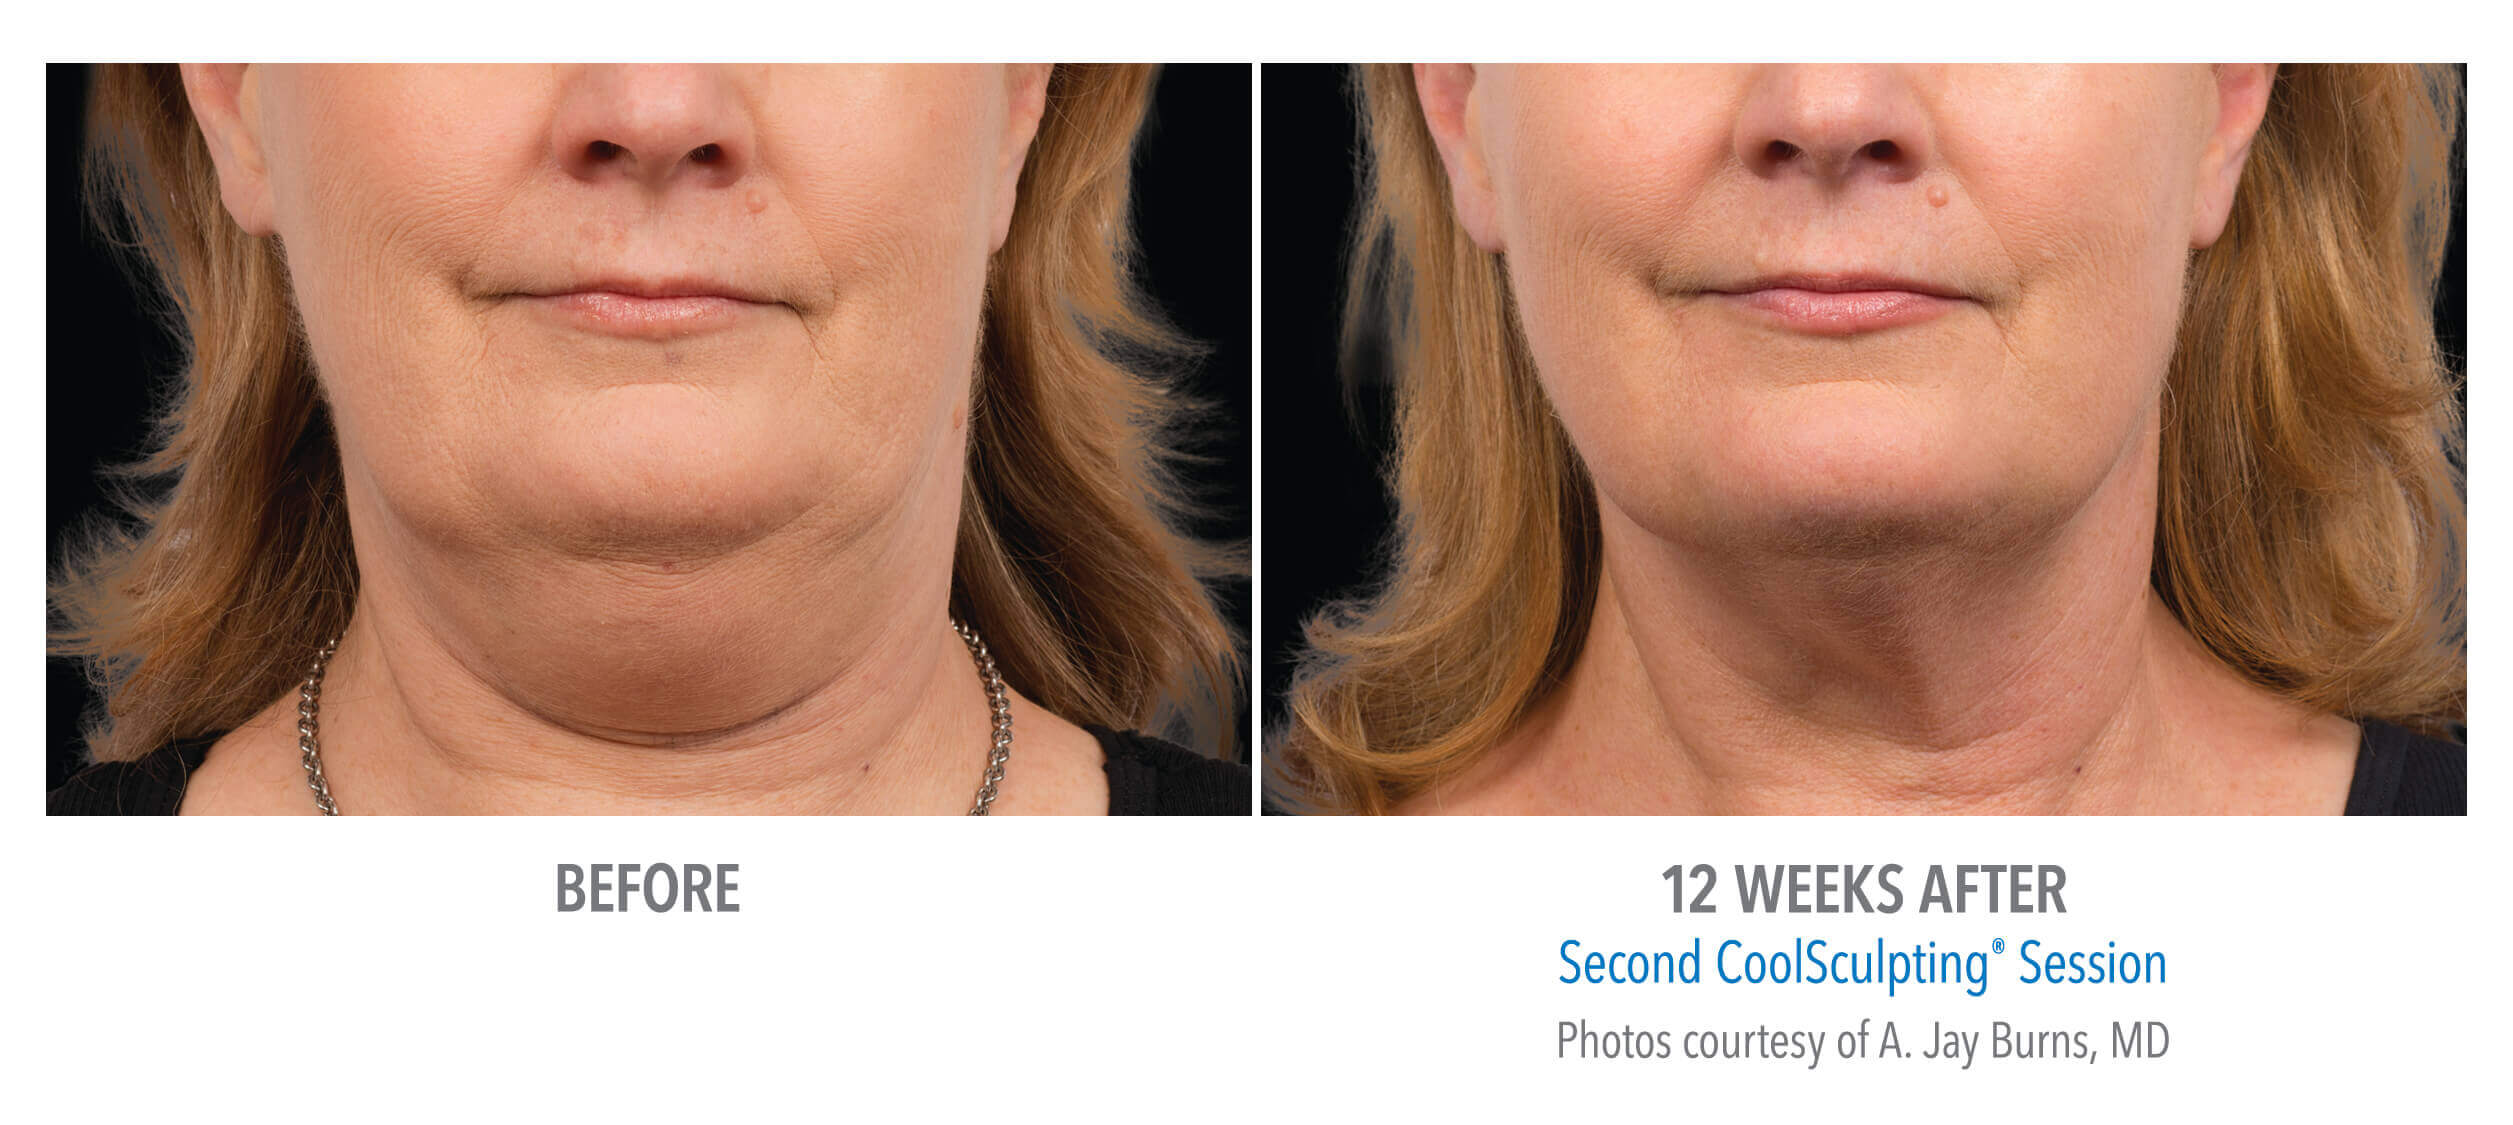 Reducing Chin Fat with CoolSculpting